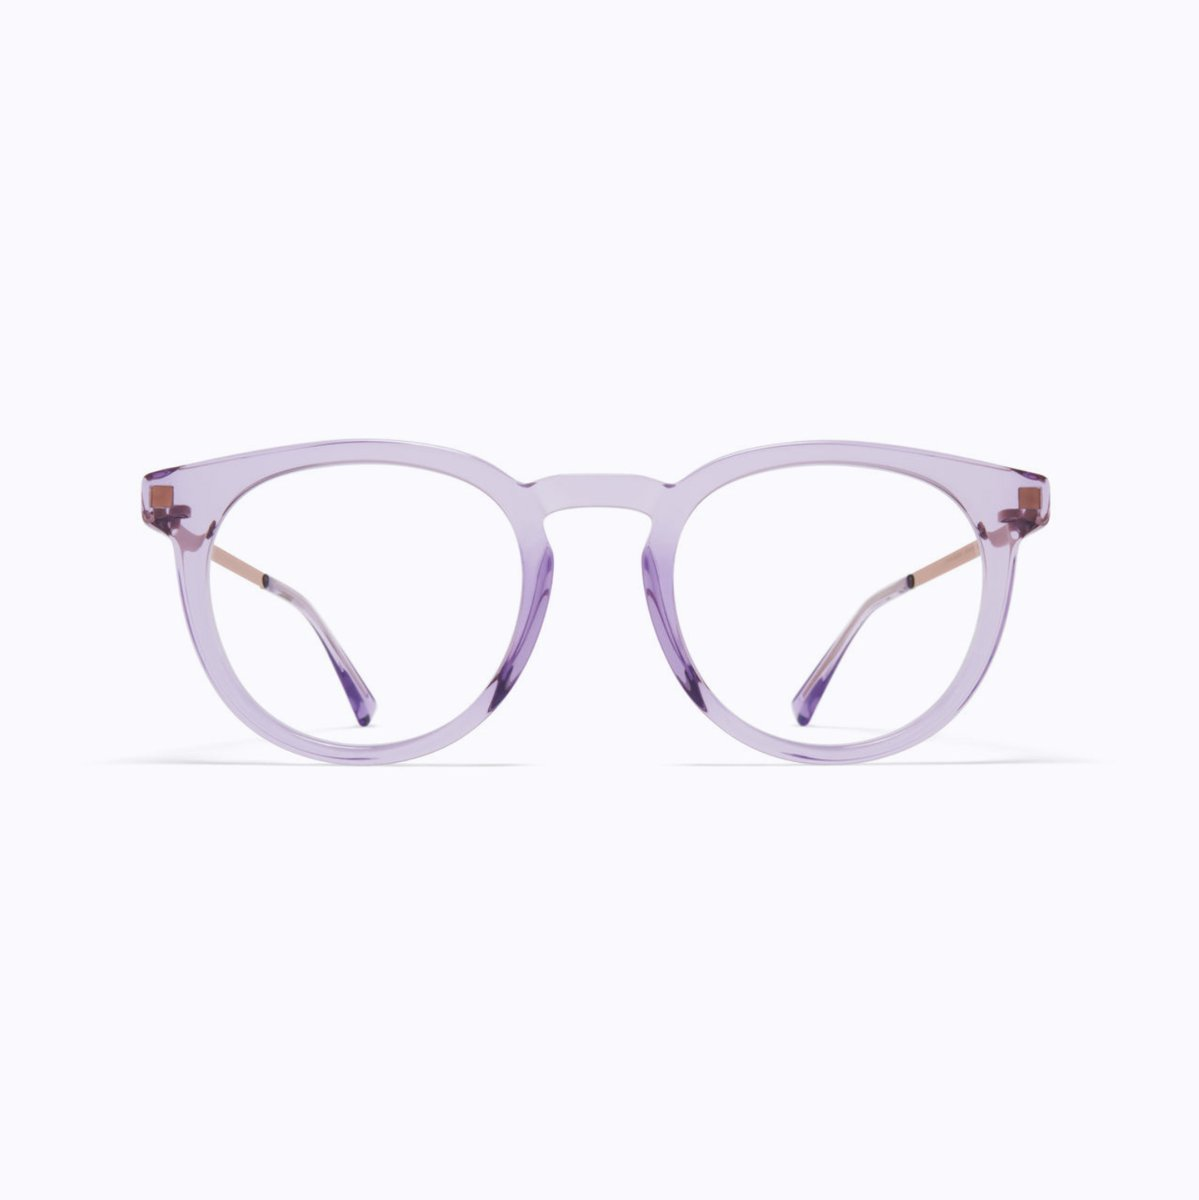 LAHTI | LITE Optical Perfectly proportioned panto style with lift in the corners.  Available in Lavender Water/Purple Bronze and other fine colour compositions. Use the MYKITA Shop finder to support your local optician. https://t.co/6VmYrPrgAZ #MYKITA https://t.co/Z0CEwGvt6B